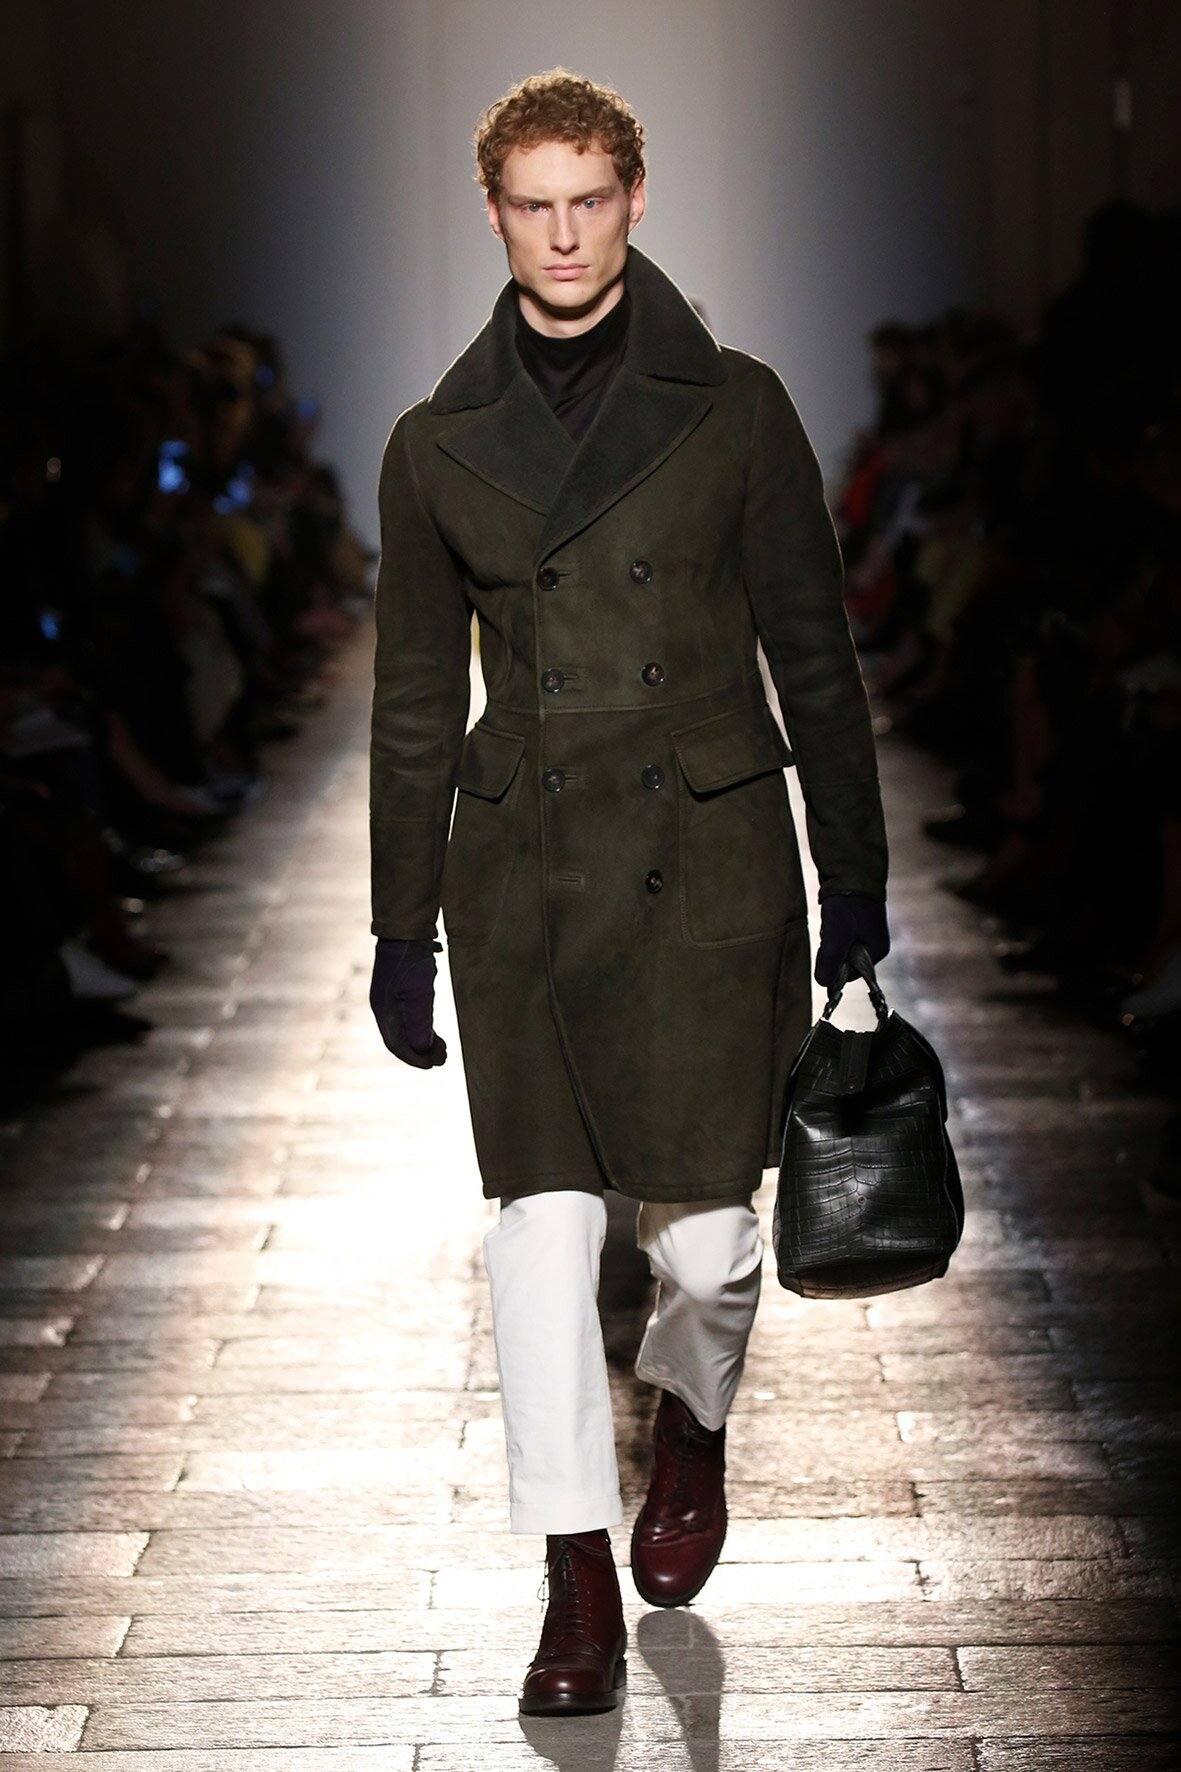 Bottega Veneta Man Milan Fashion Week